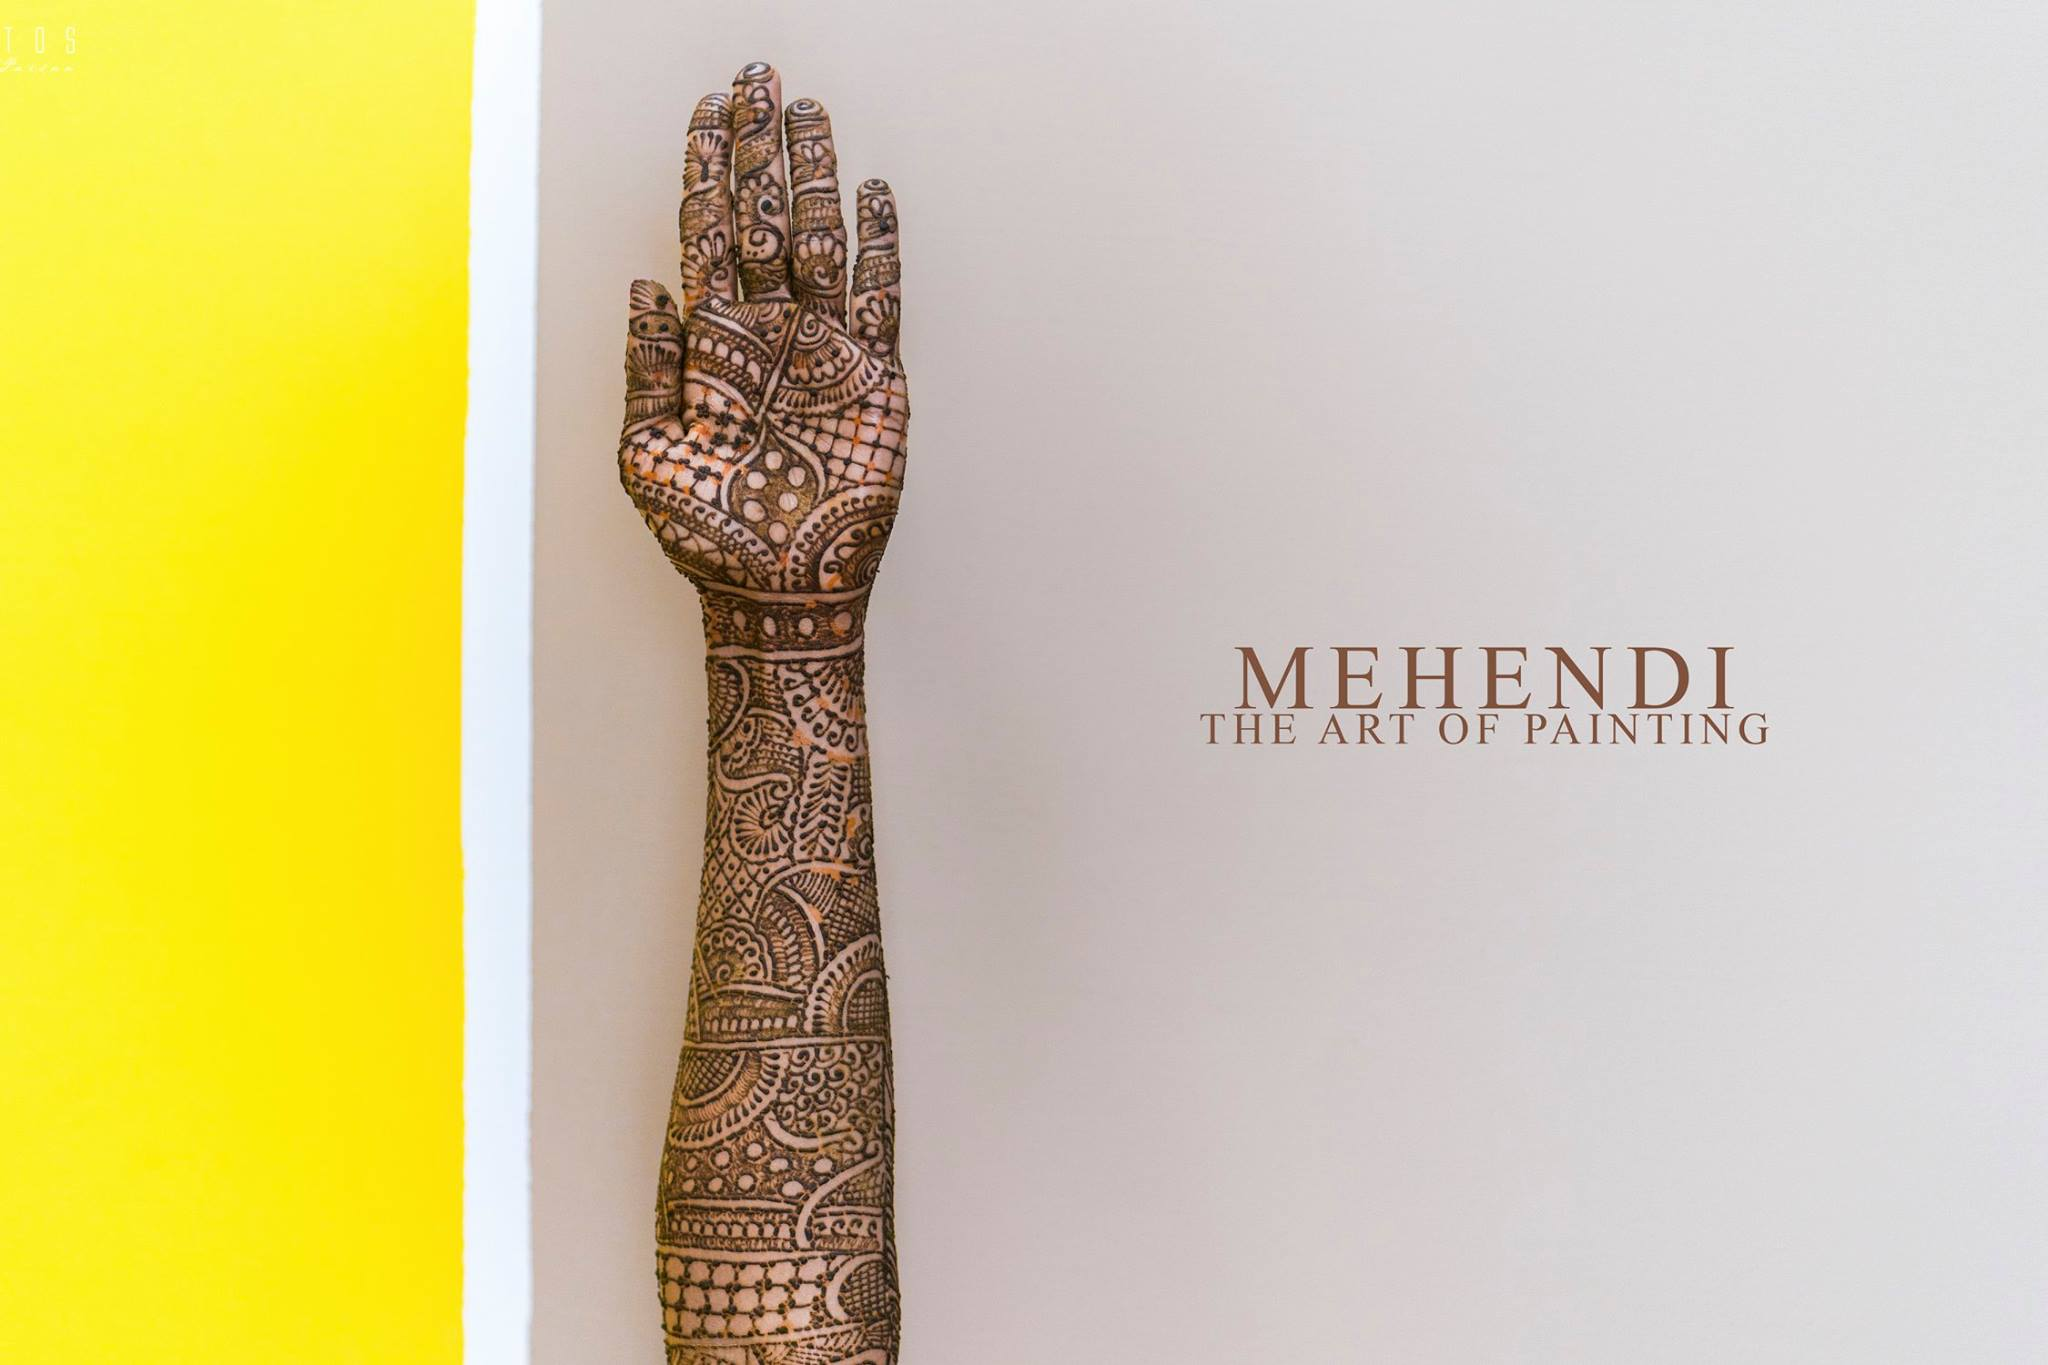 Mehndi the art of painting